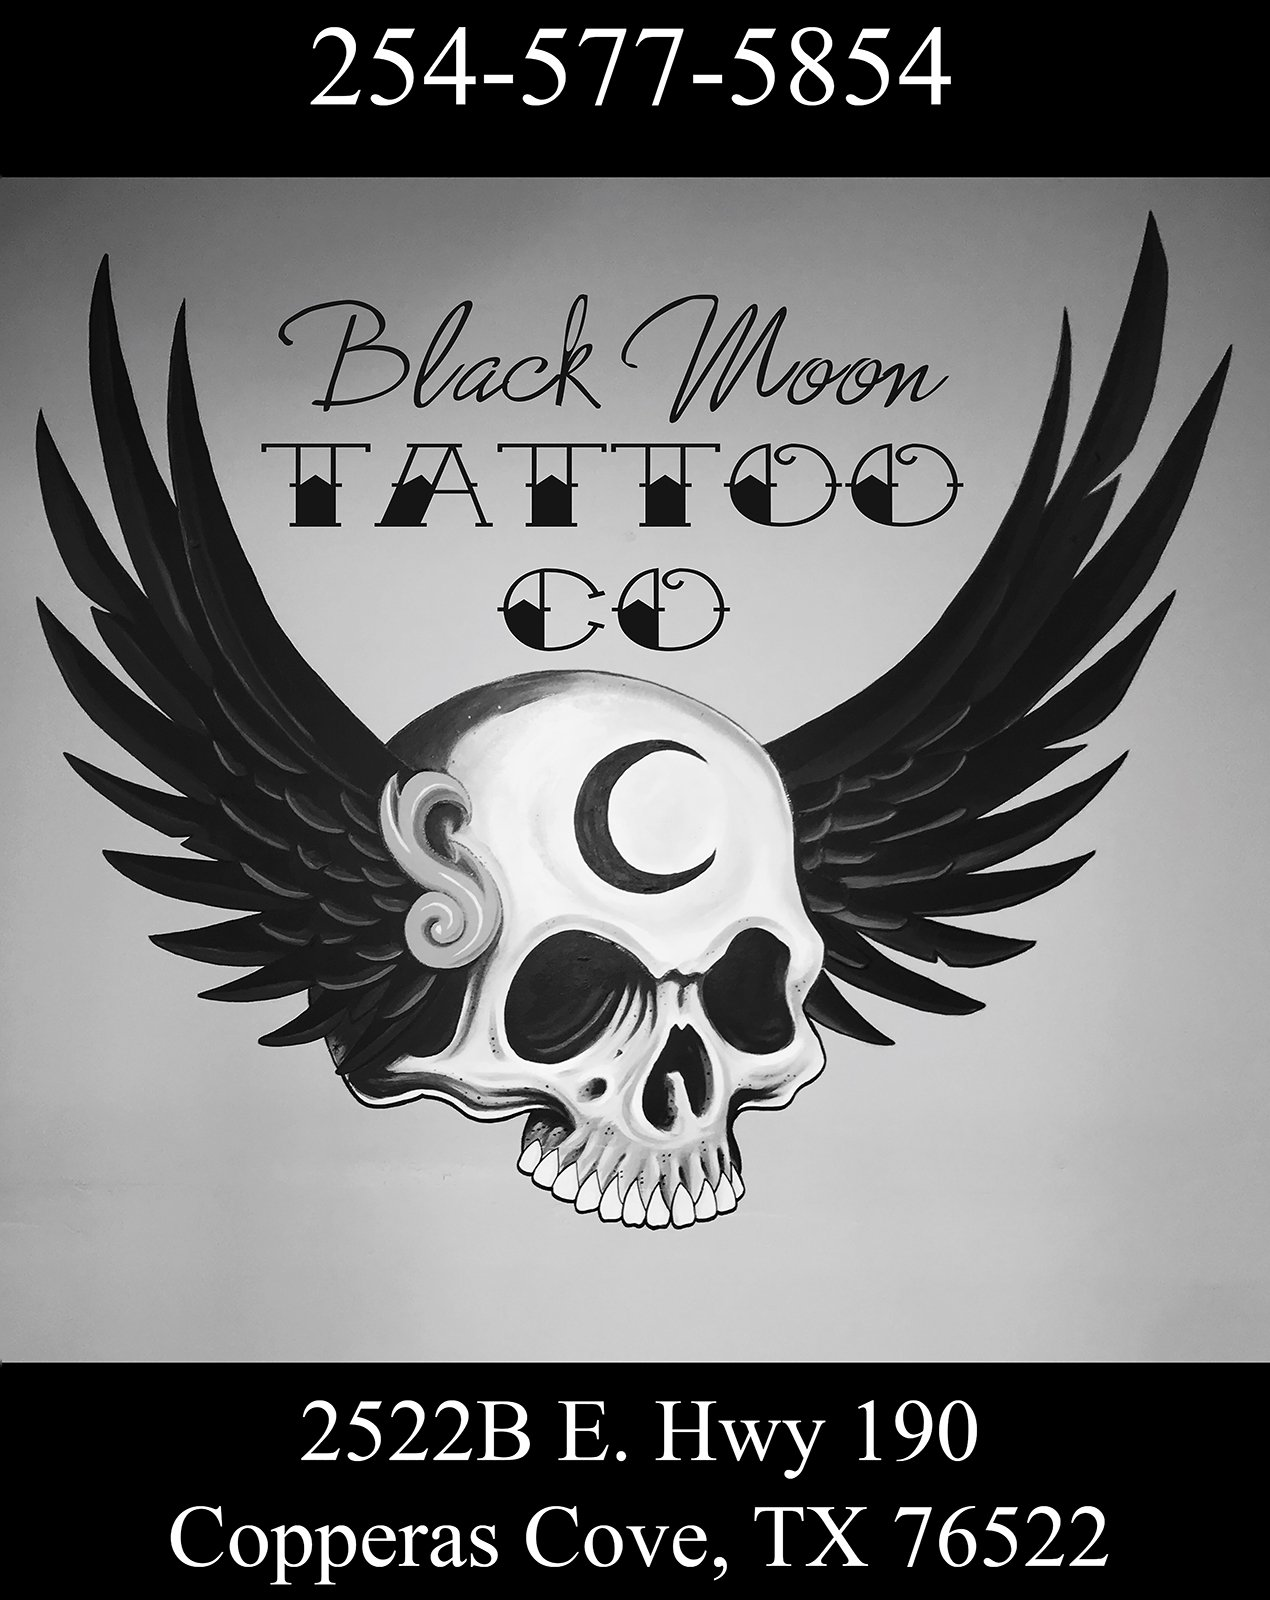 Black Moon Tattoo Company Copperas Cove Texas